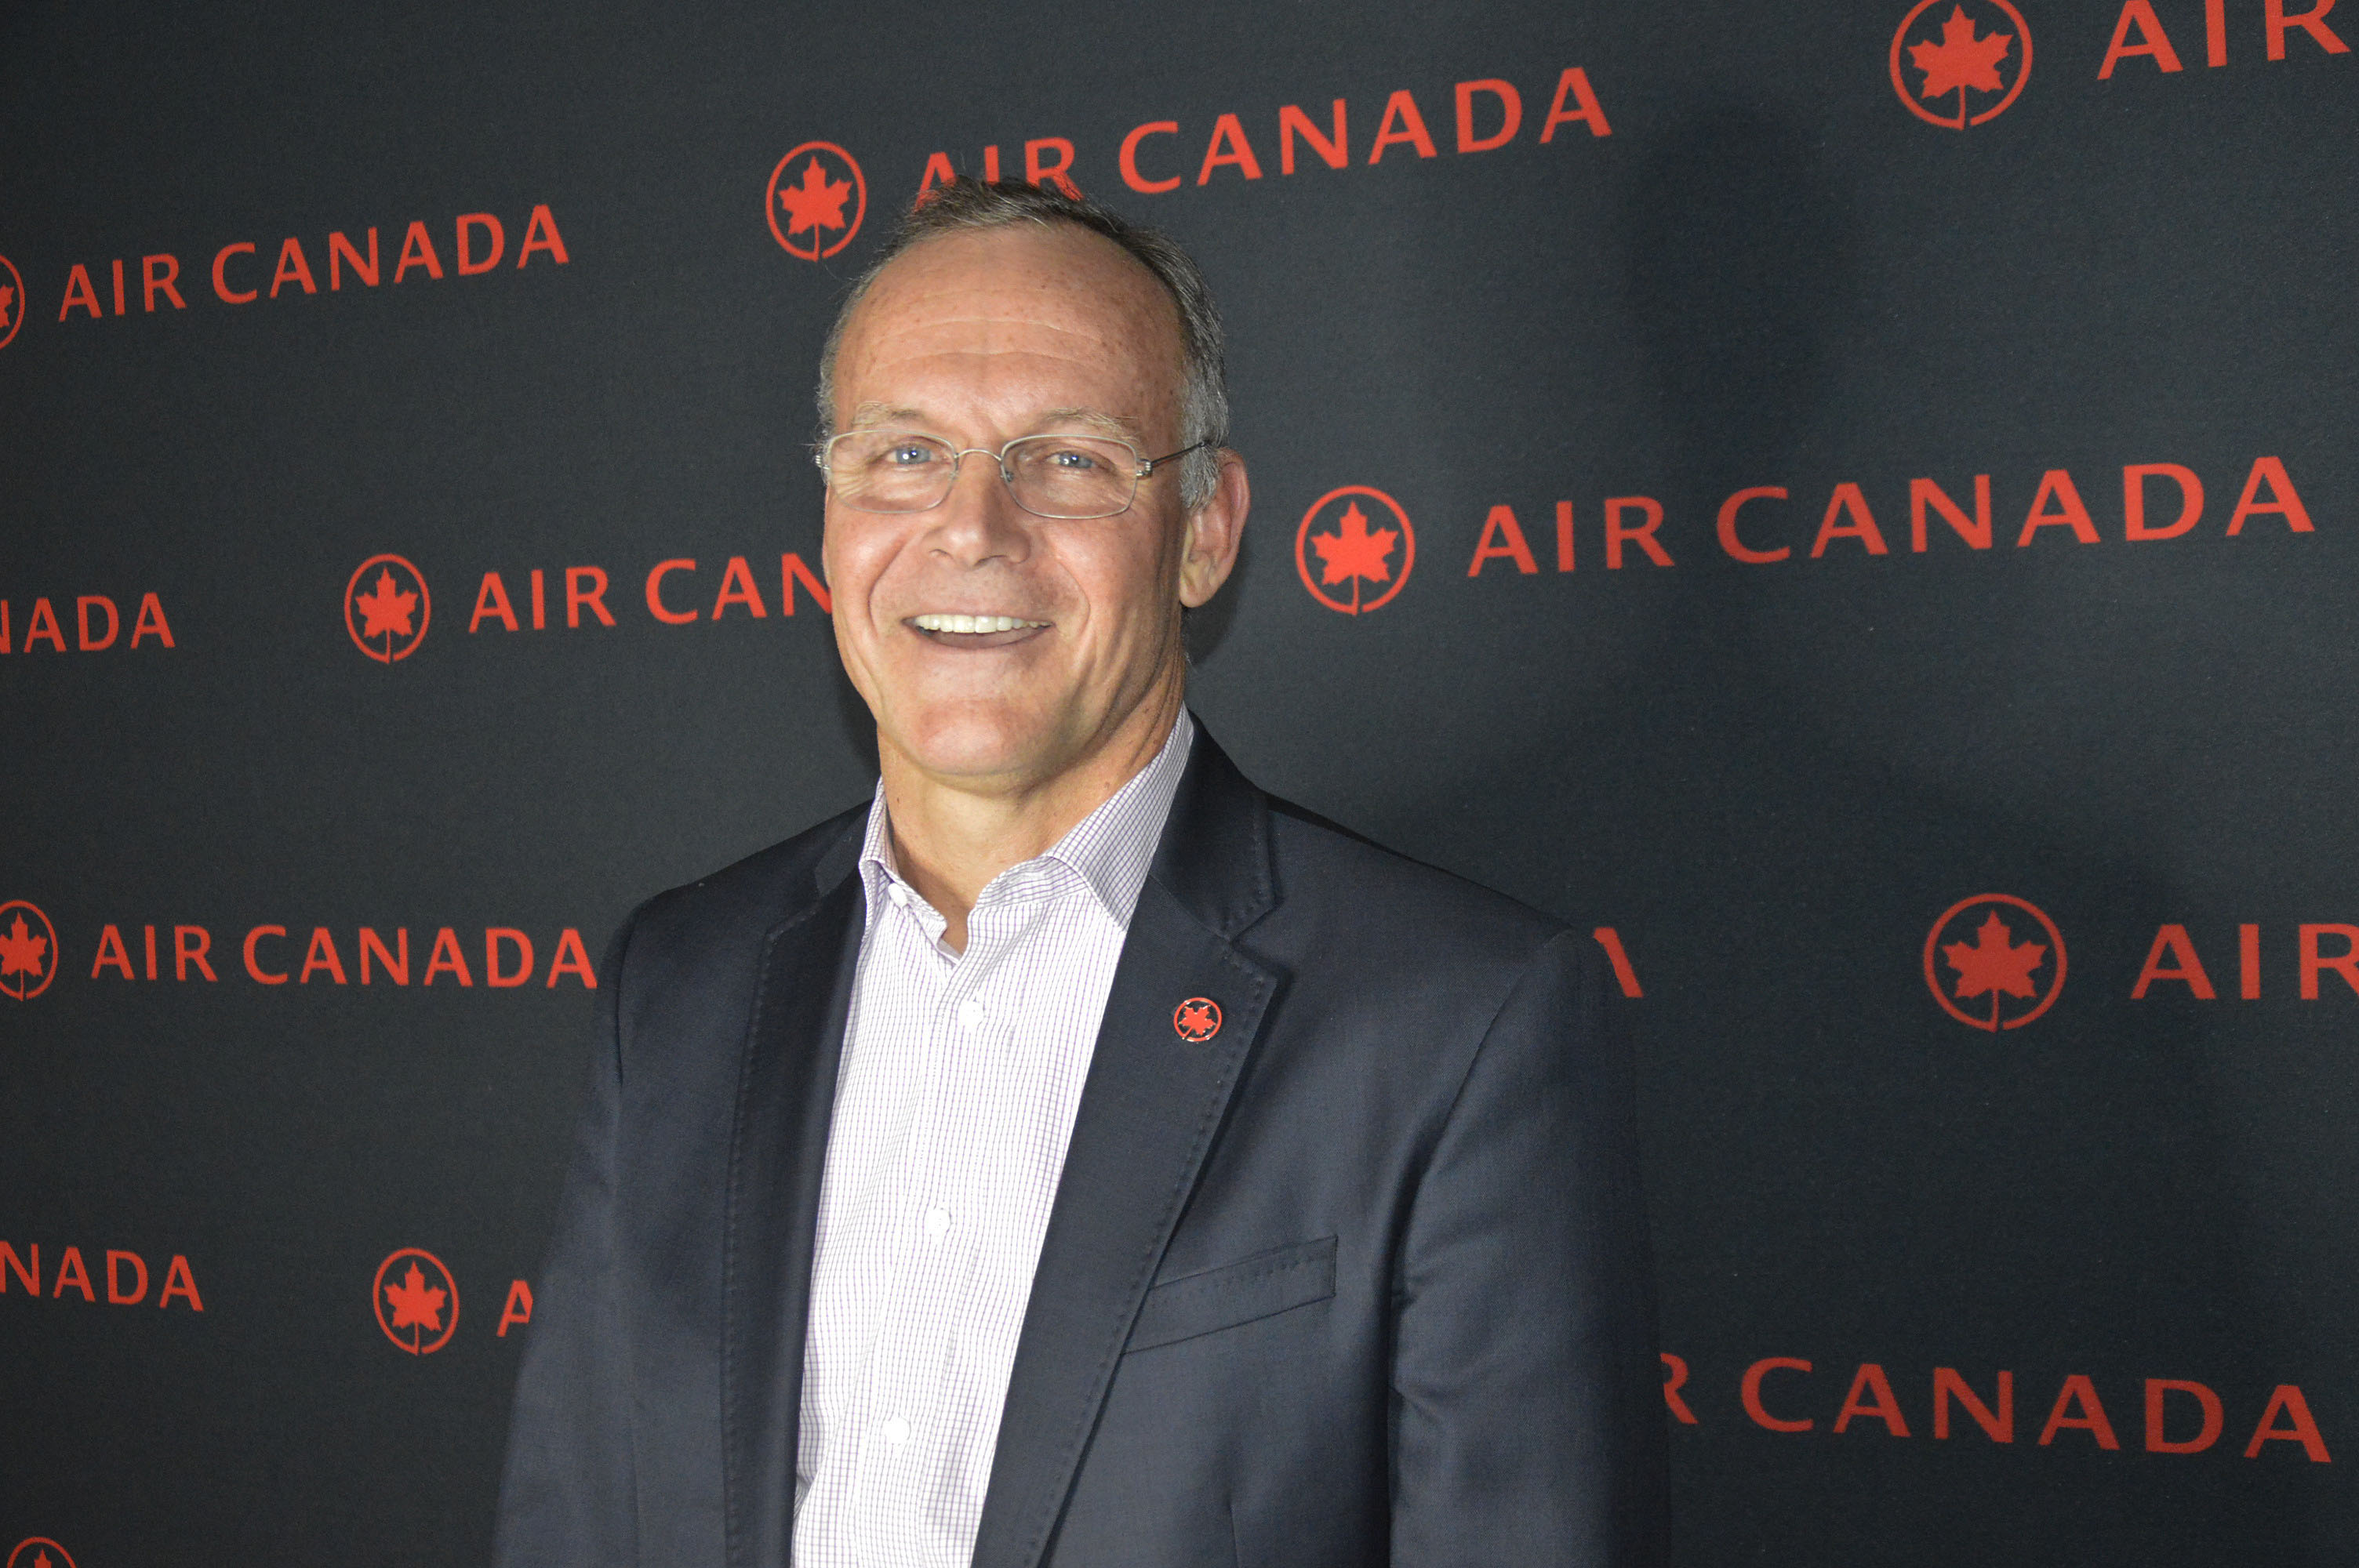 John MacLeod, VP of global sales & alliances, Air Canada